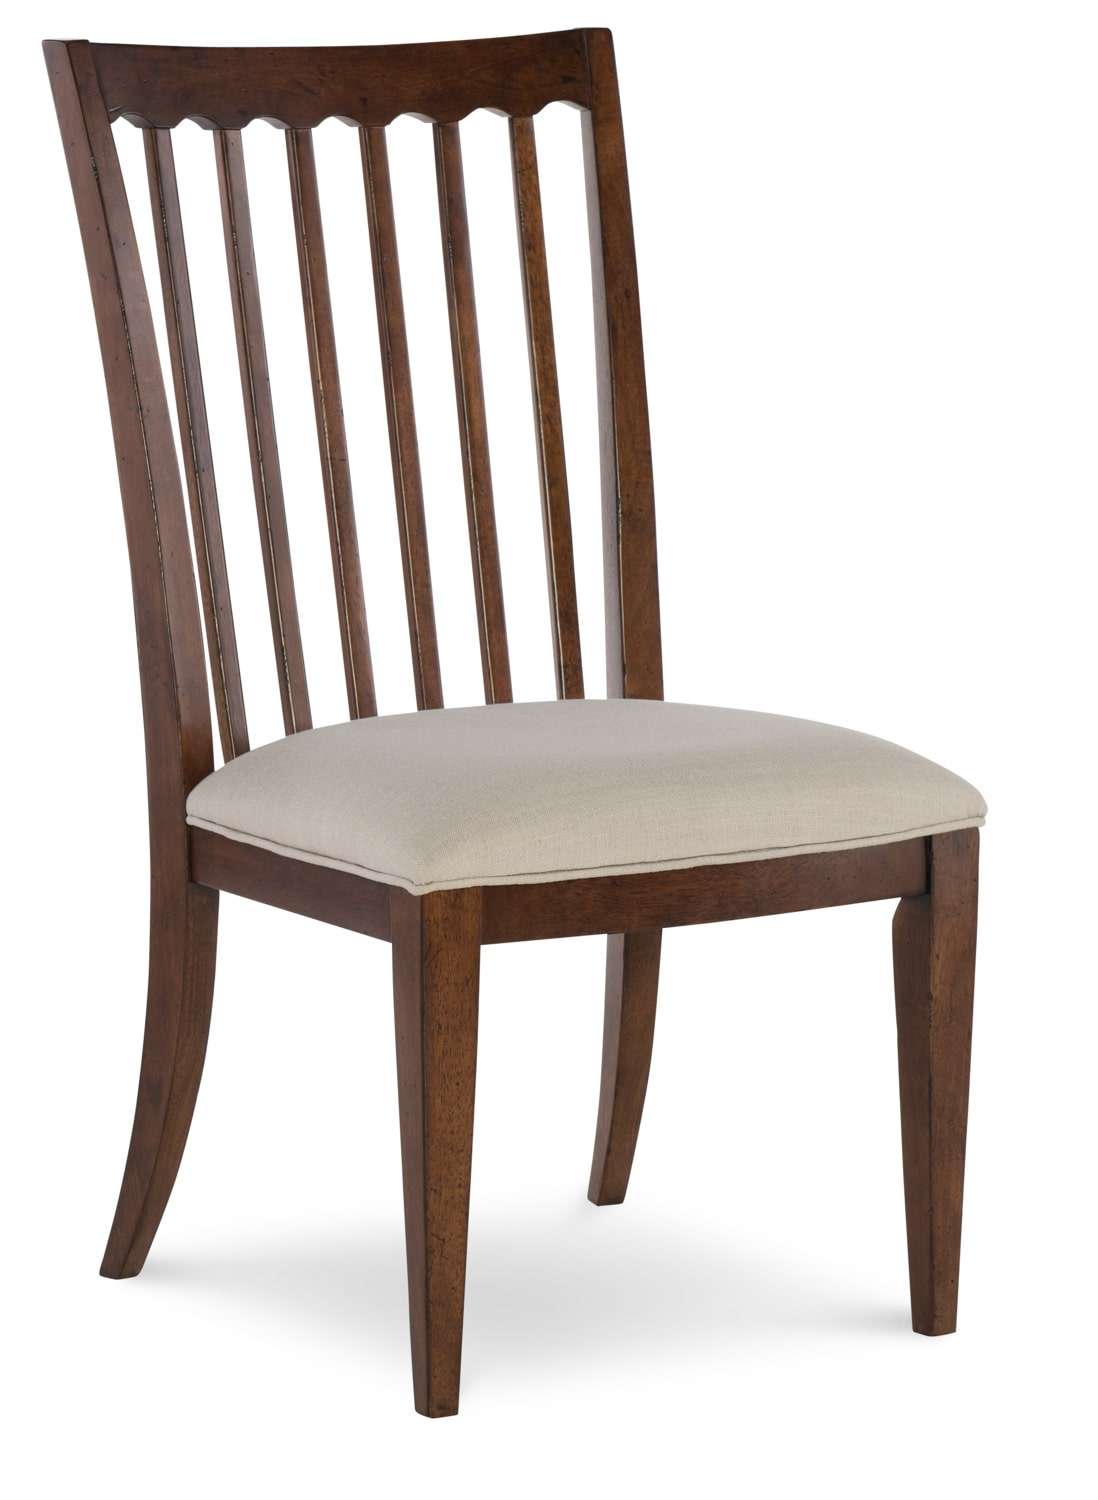 Rachael Ray Upstate Side Chair - Cherry